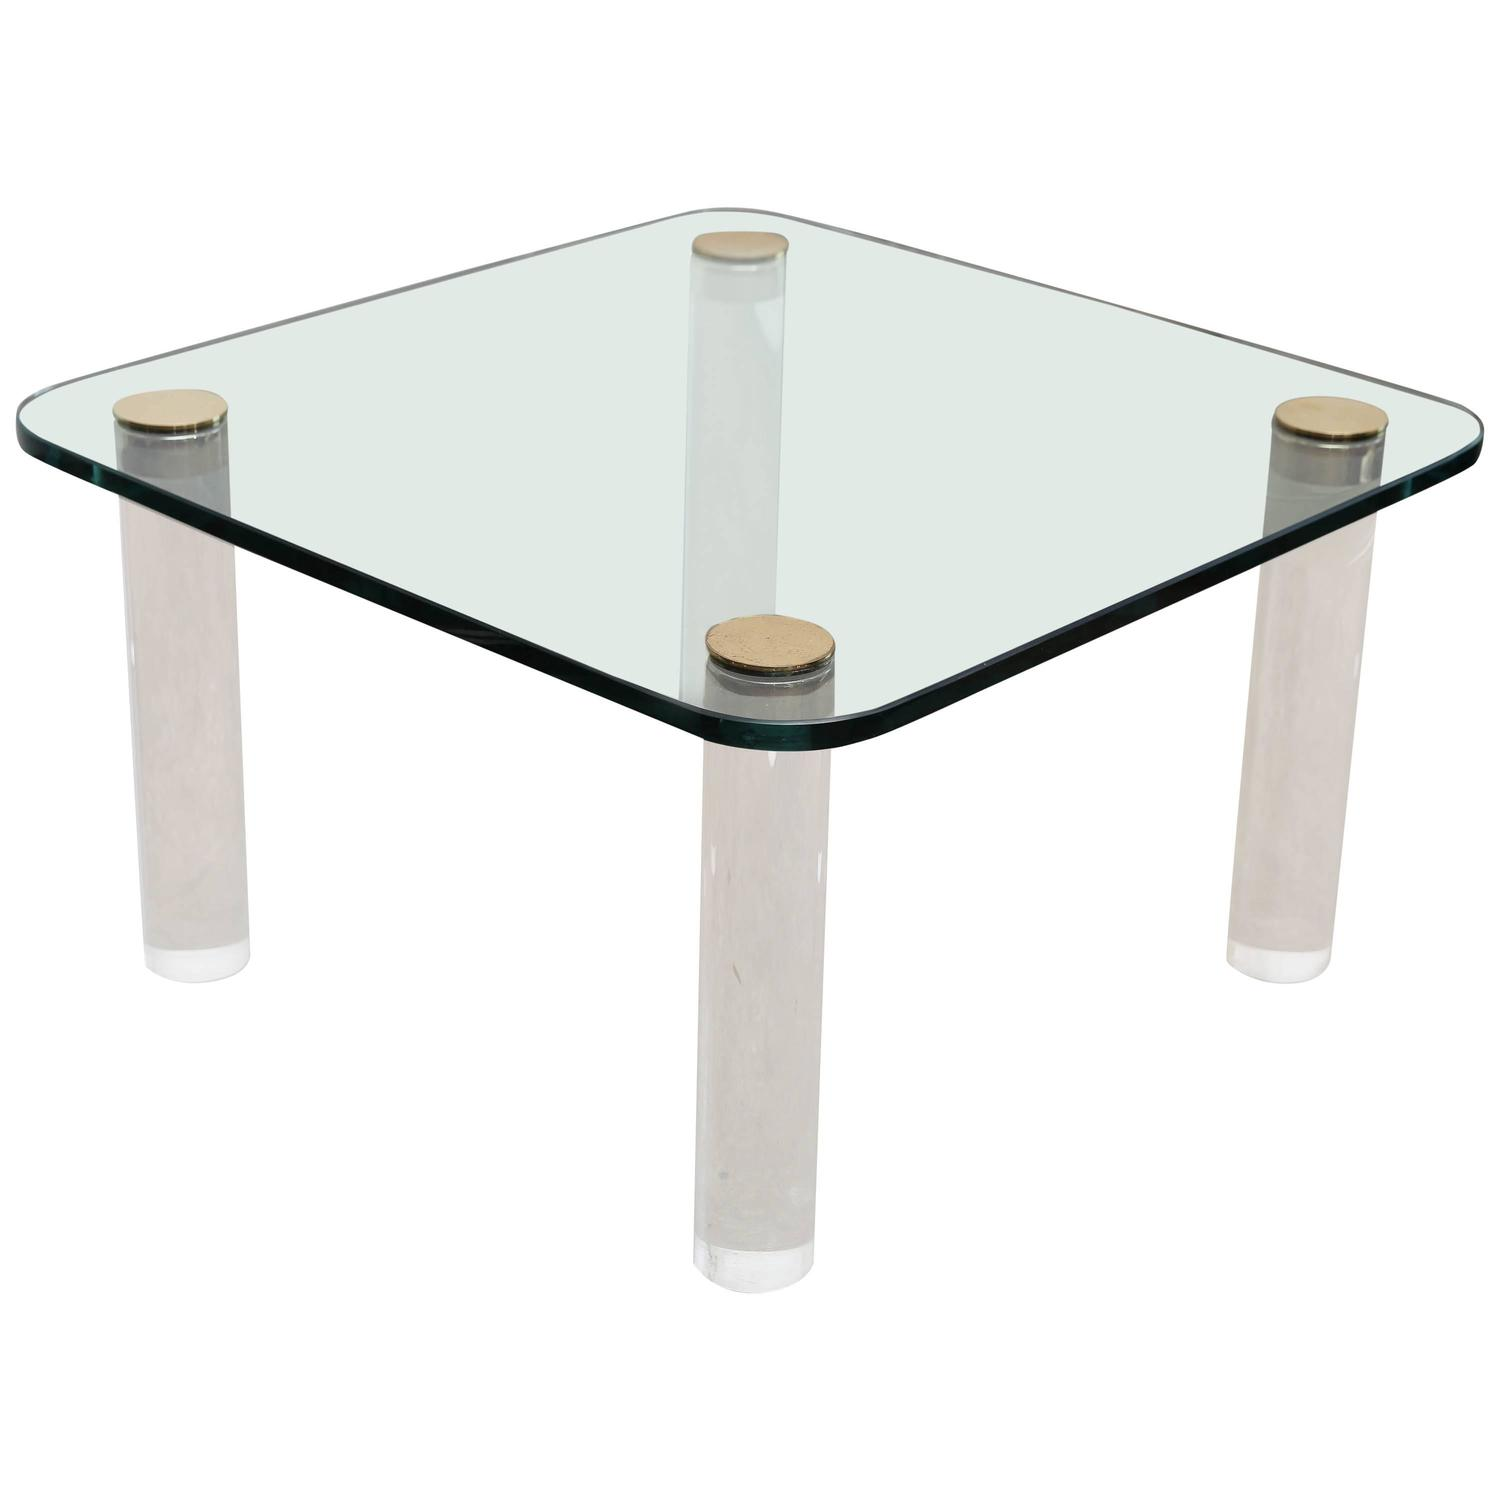 Fabulous Pace Collection Brass and Glass Coffee Table Mid Century